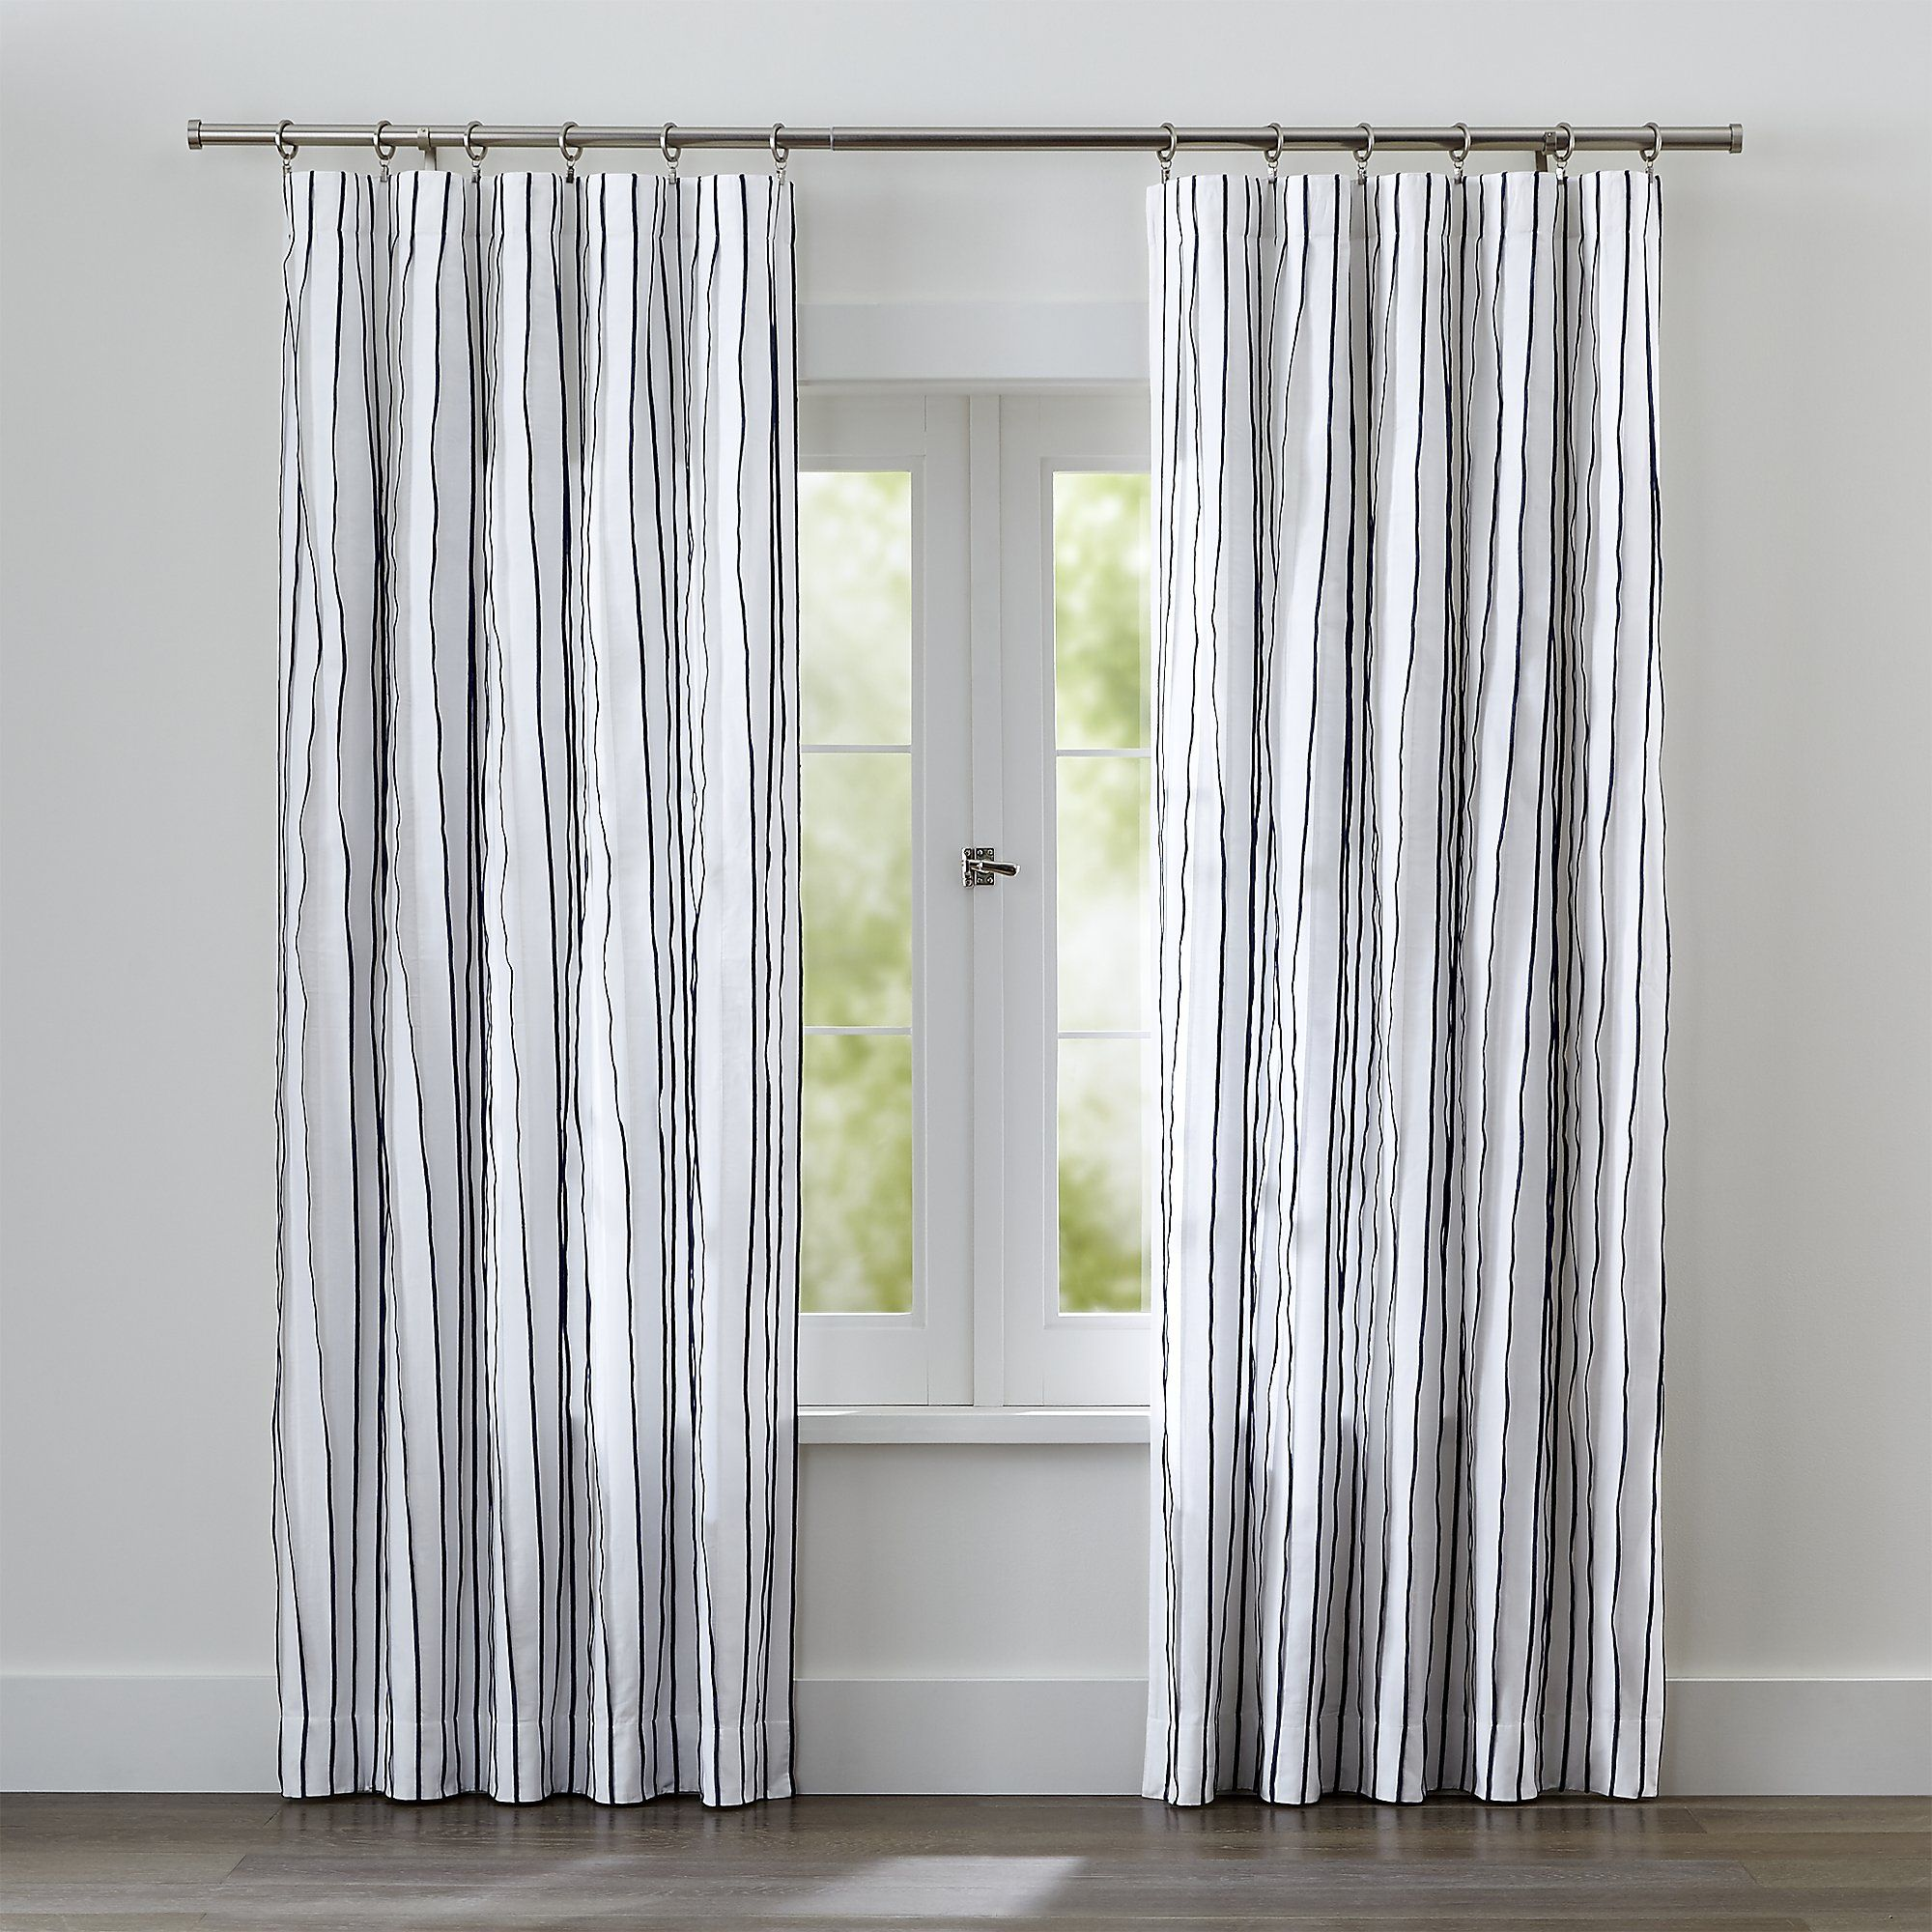 casual crate vertical the panels of striped stripes feature living to cotton blue curtain virtual pleats with curtains chambray along natural create kendal pin room enhanced stitching and barrel